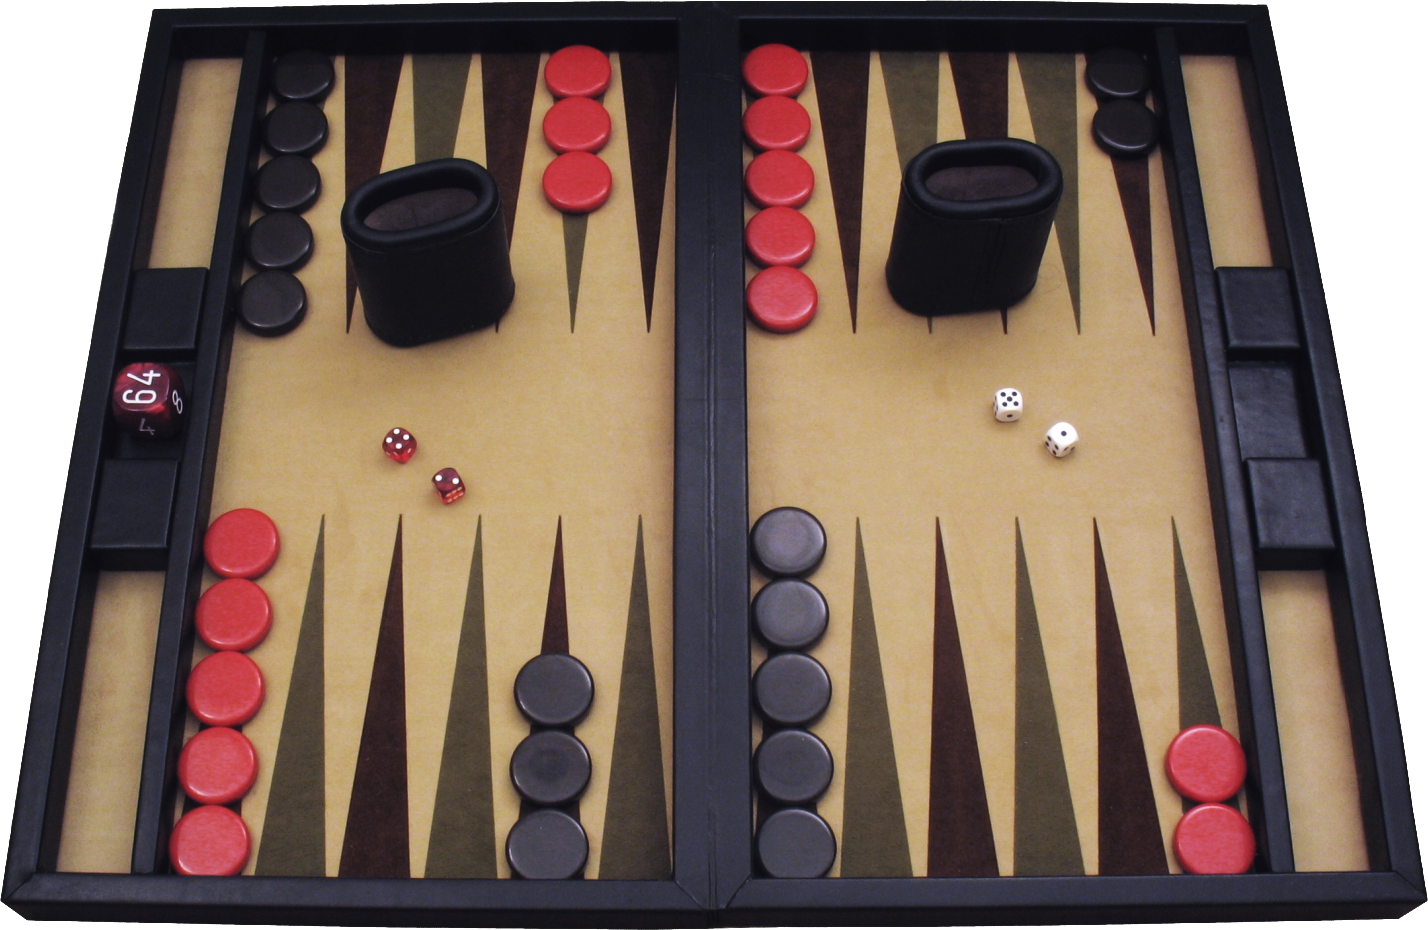 It's just an image of Revered Printable Backgammon Board